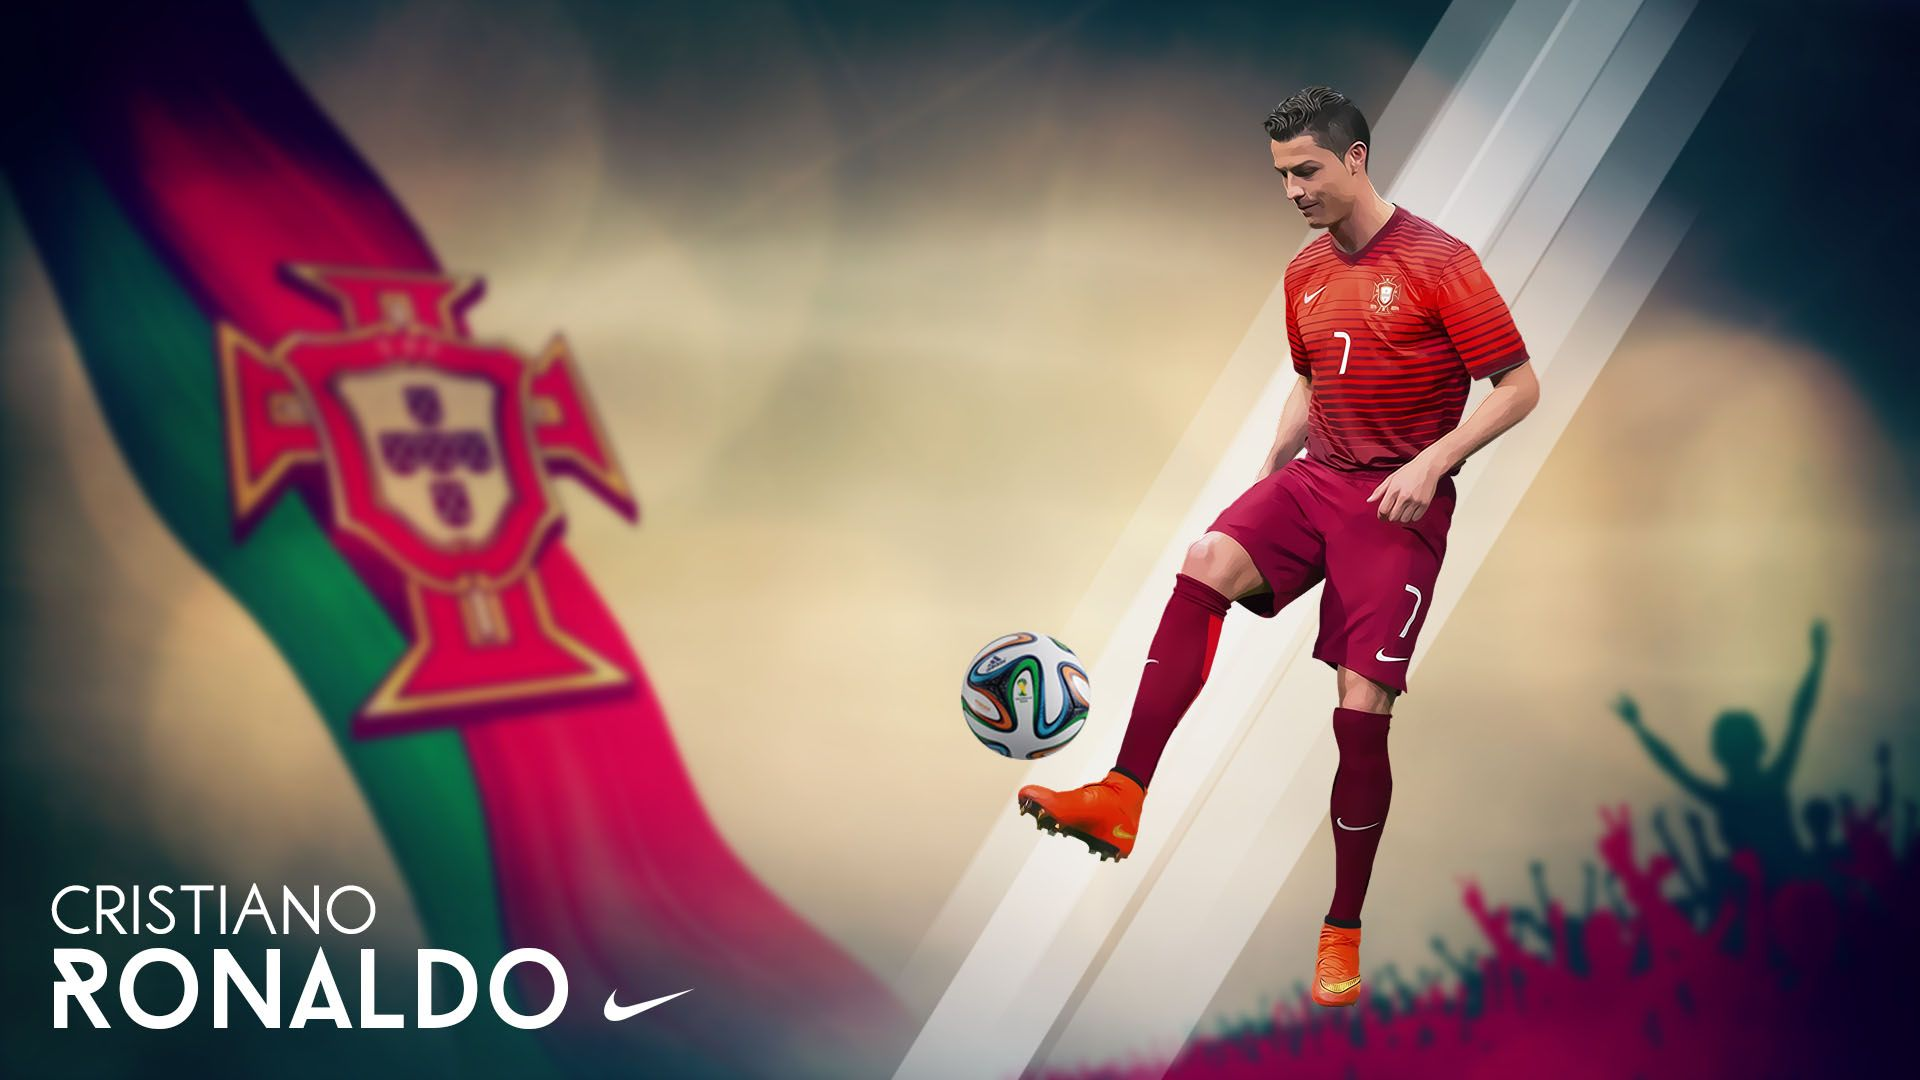 Cristiano Ronaldo Wallpapers Images Photos Pictures Backgrounds 1920